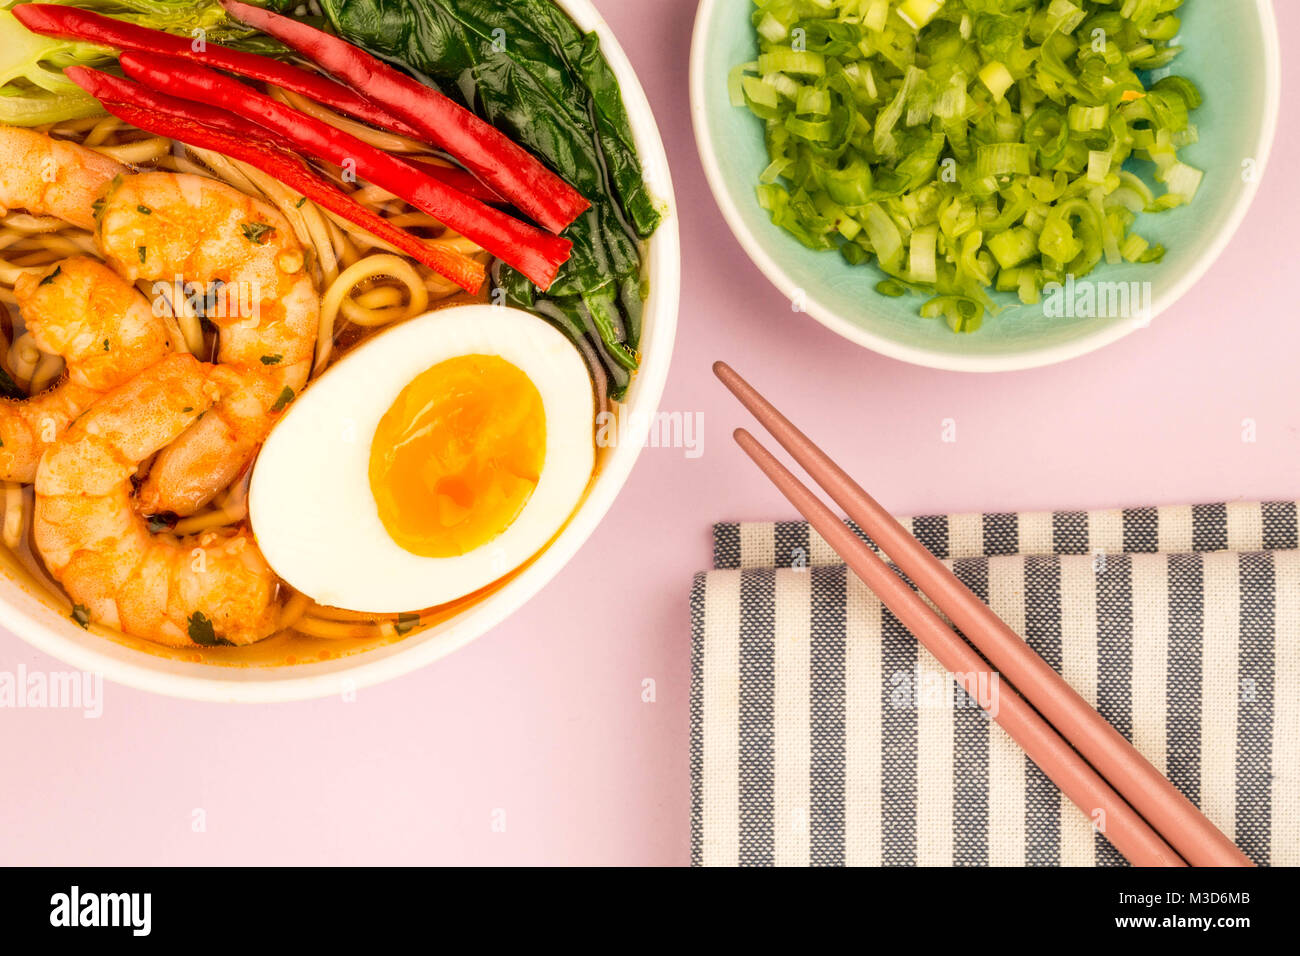 Japanese Style Prawn And Noodle Ramen Soup With Pak Choi And Chillies Against A Pink Background - Stock Image